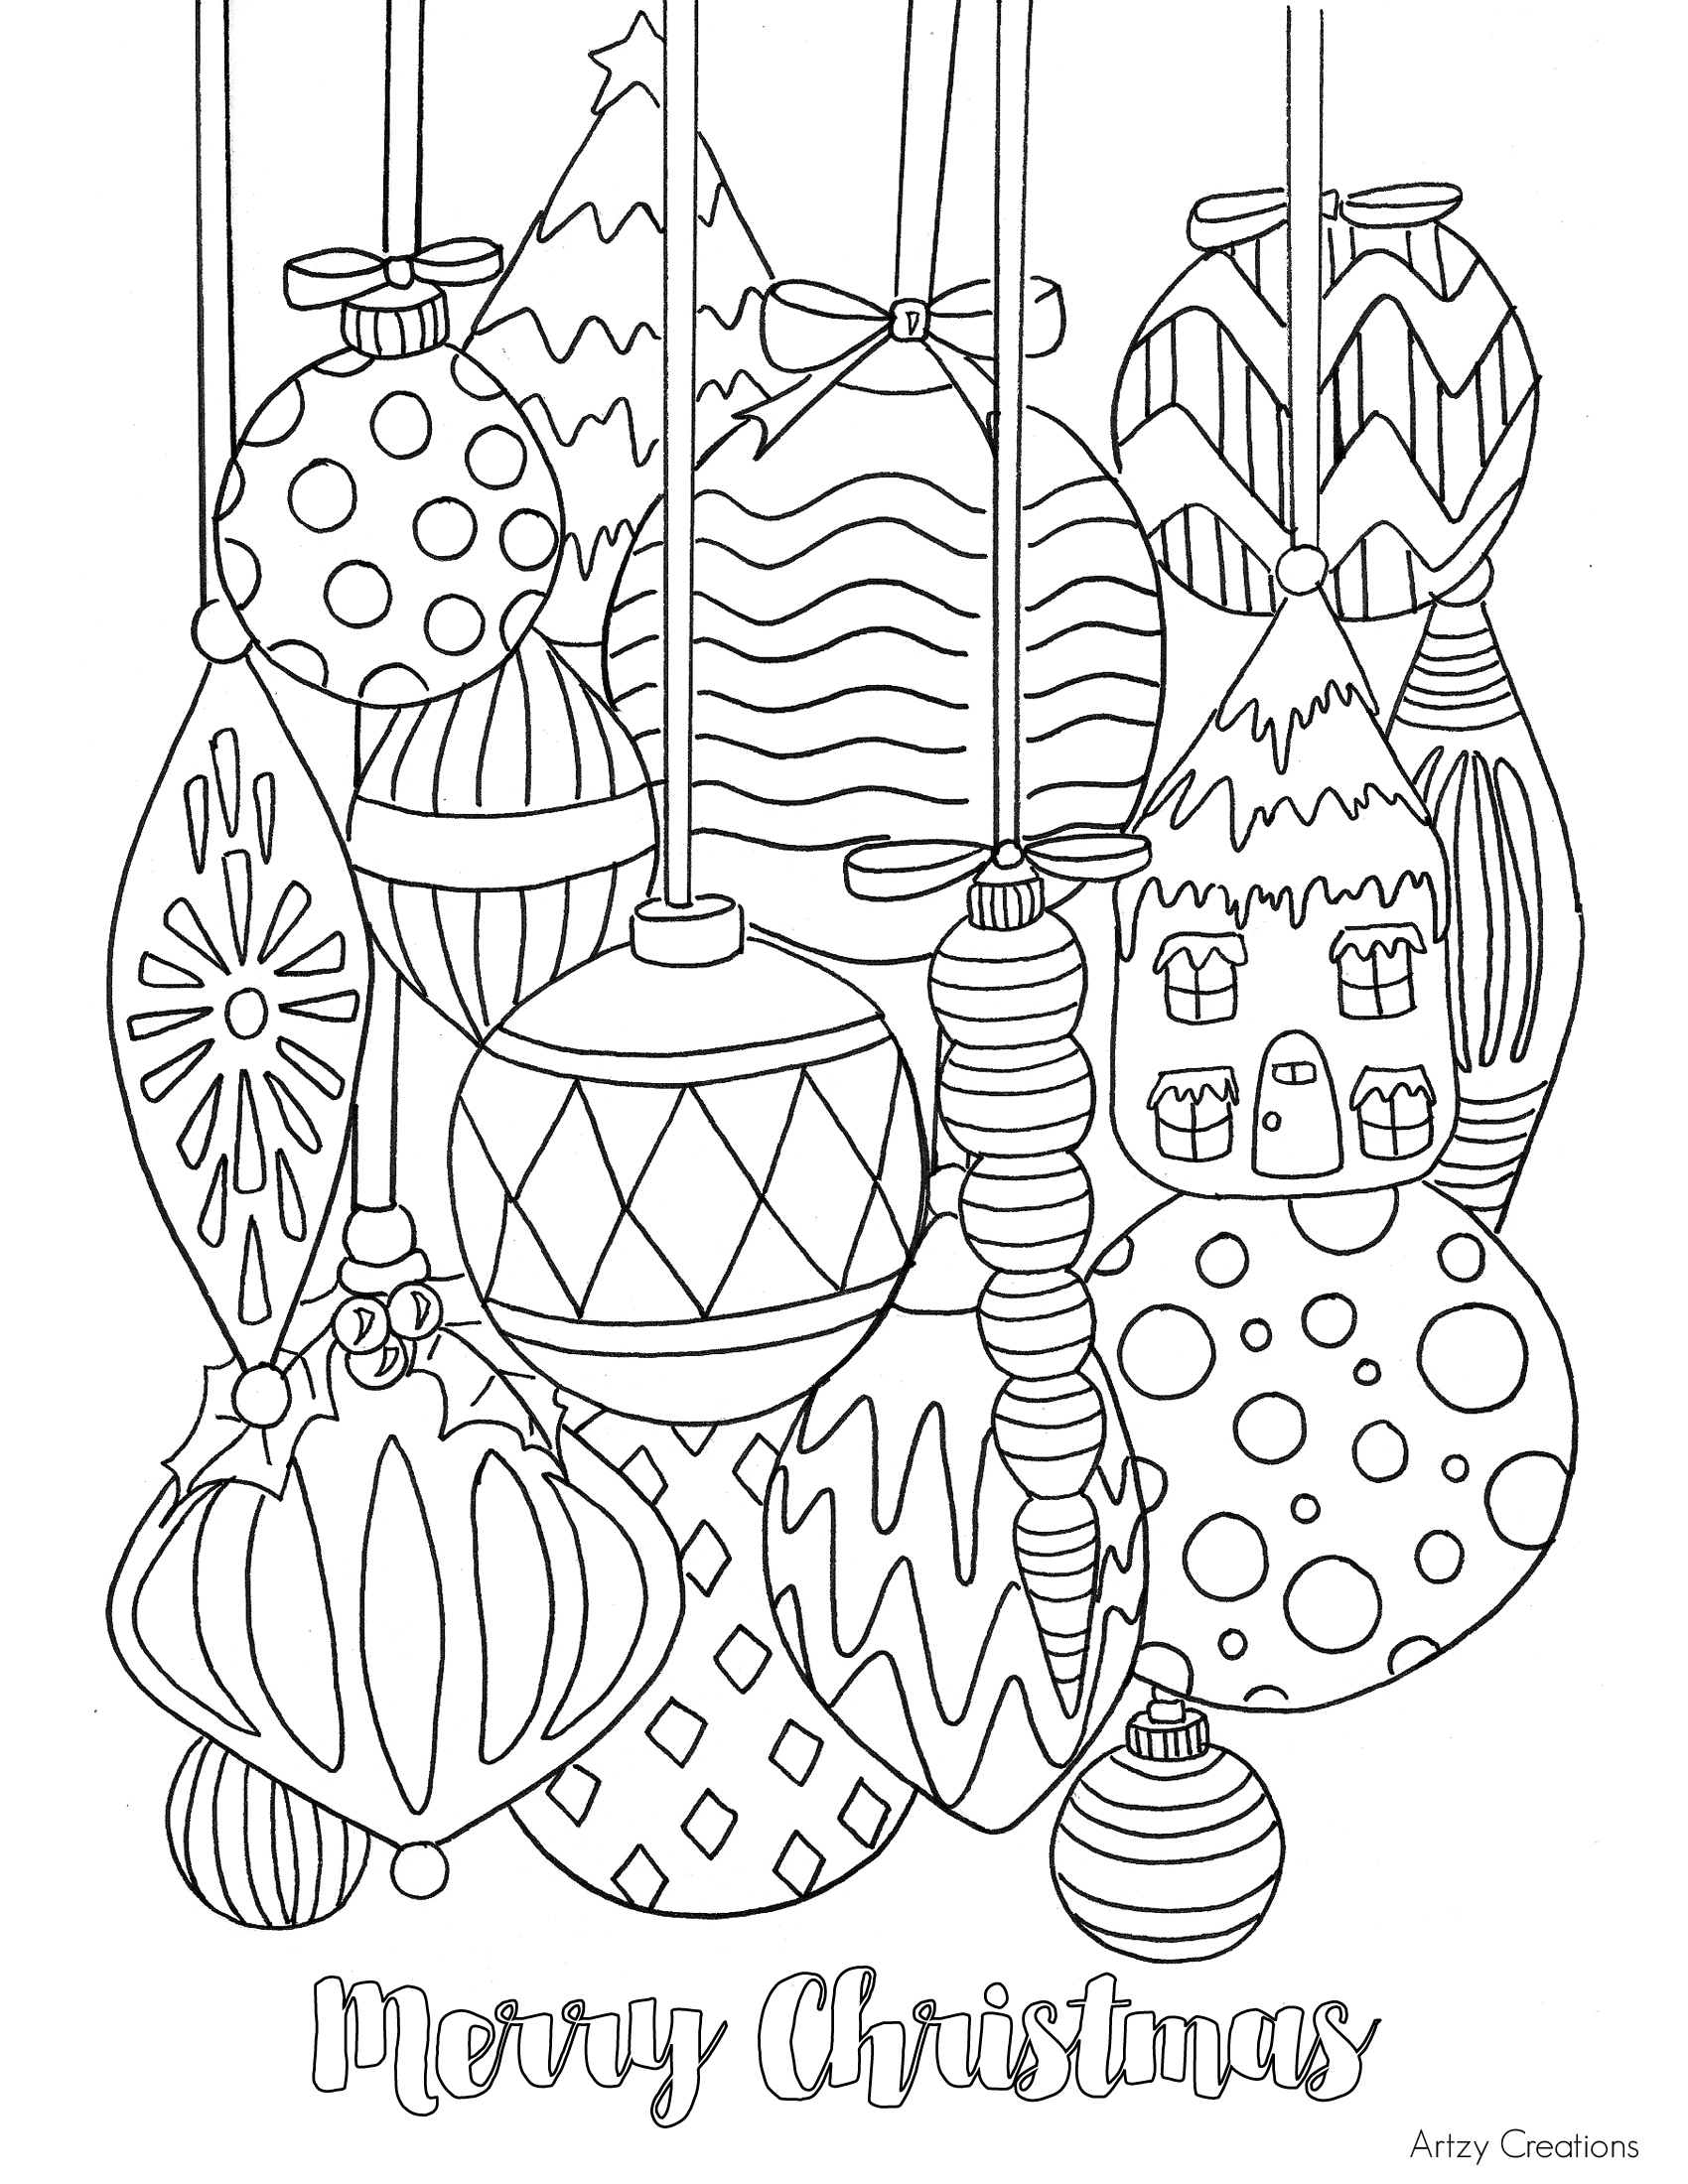 christmas decorations color pages - free christmas ornament coloring page tgif this